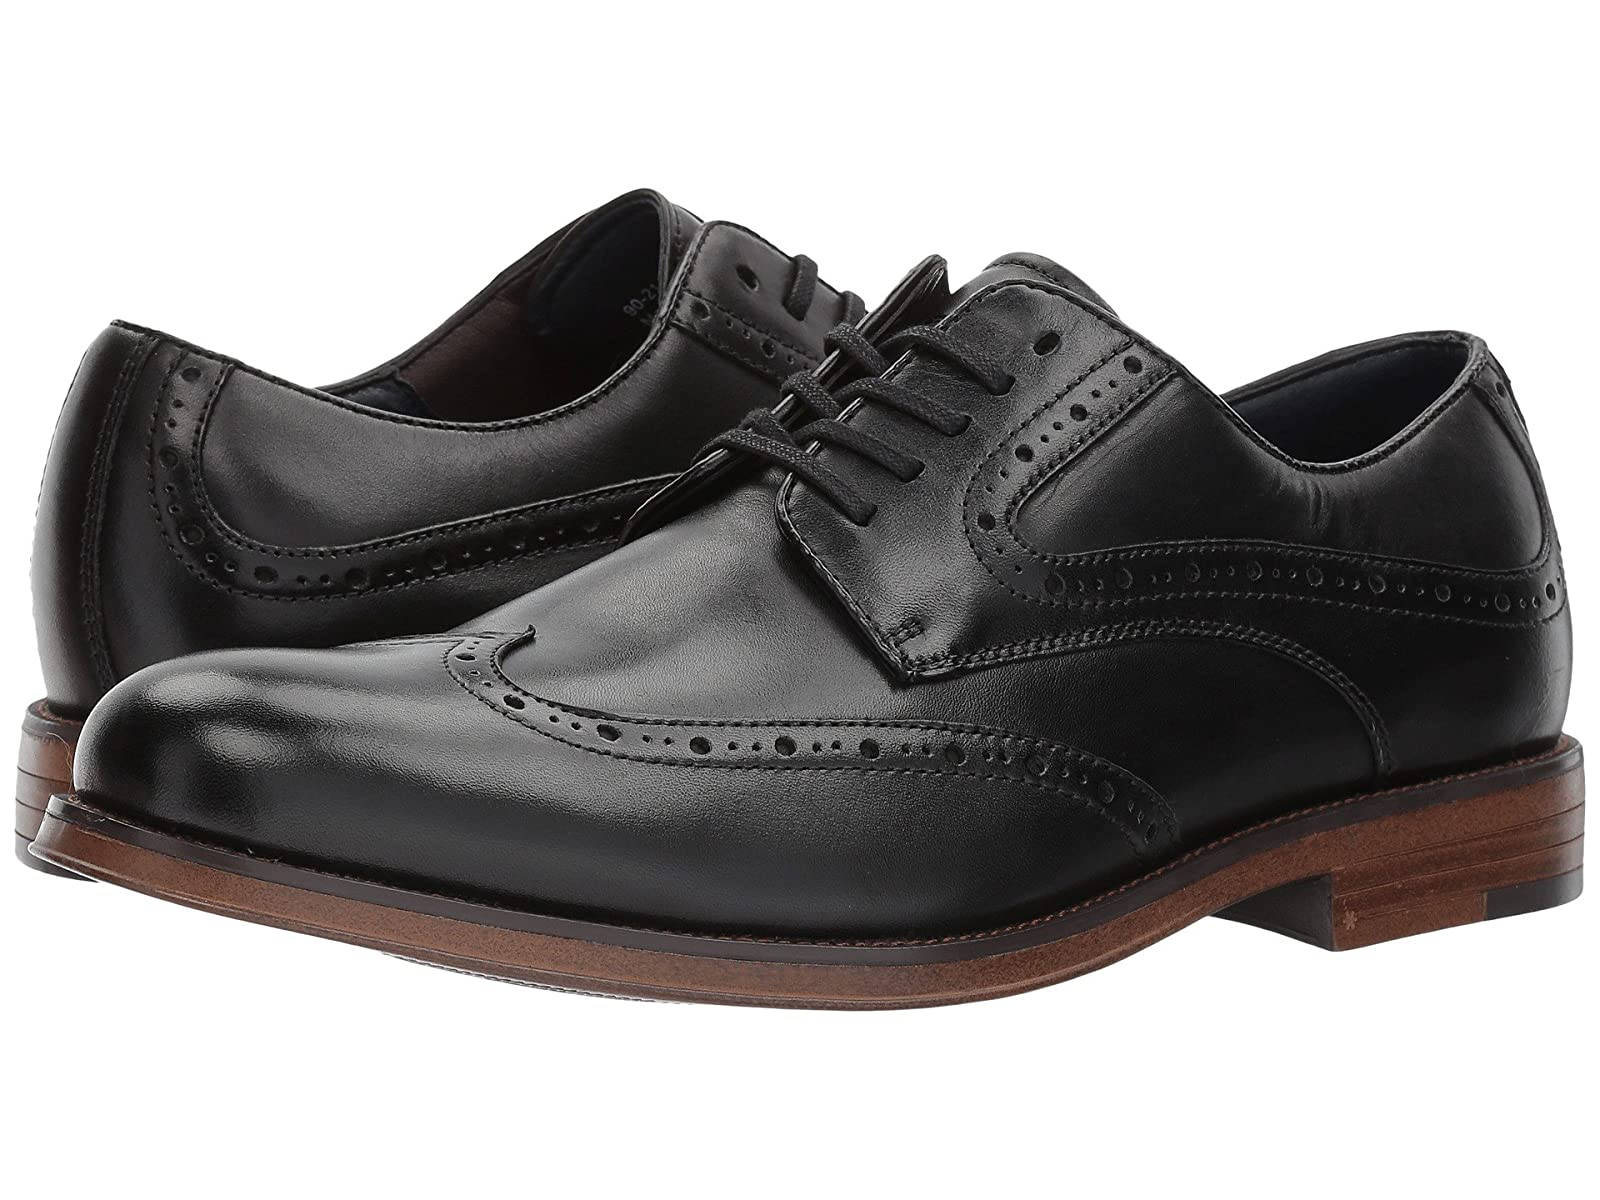 Dockers Hanover Wingtip OxfordCheap and distinctive eye-catching shoes